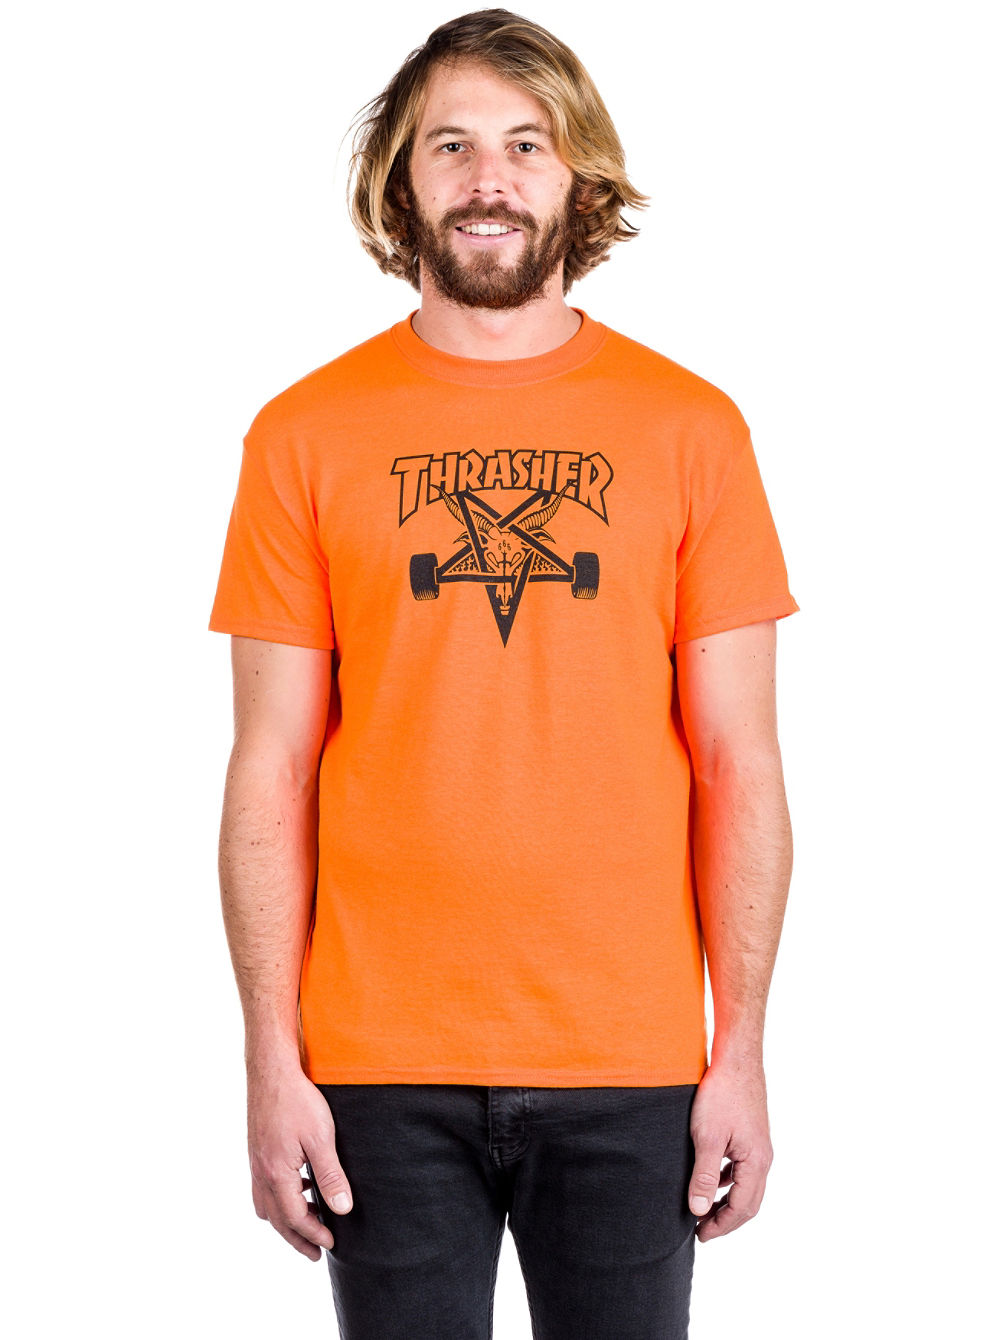 8fd627c37a4a Buy Thrasher Skate Goat T-Shirt online at Blue Tomato